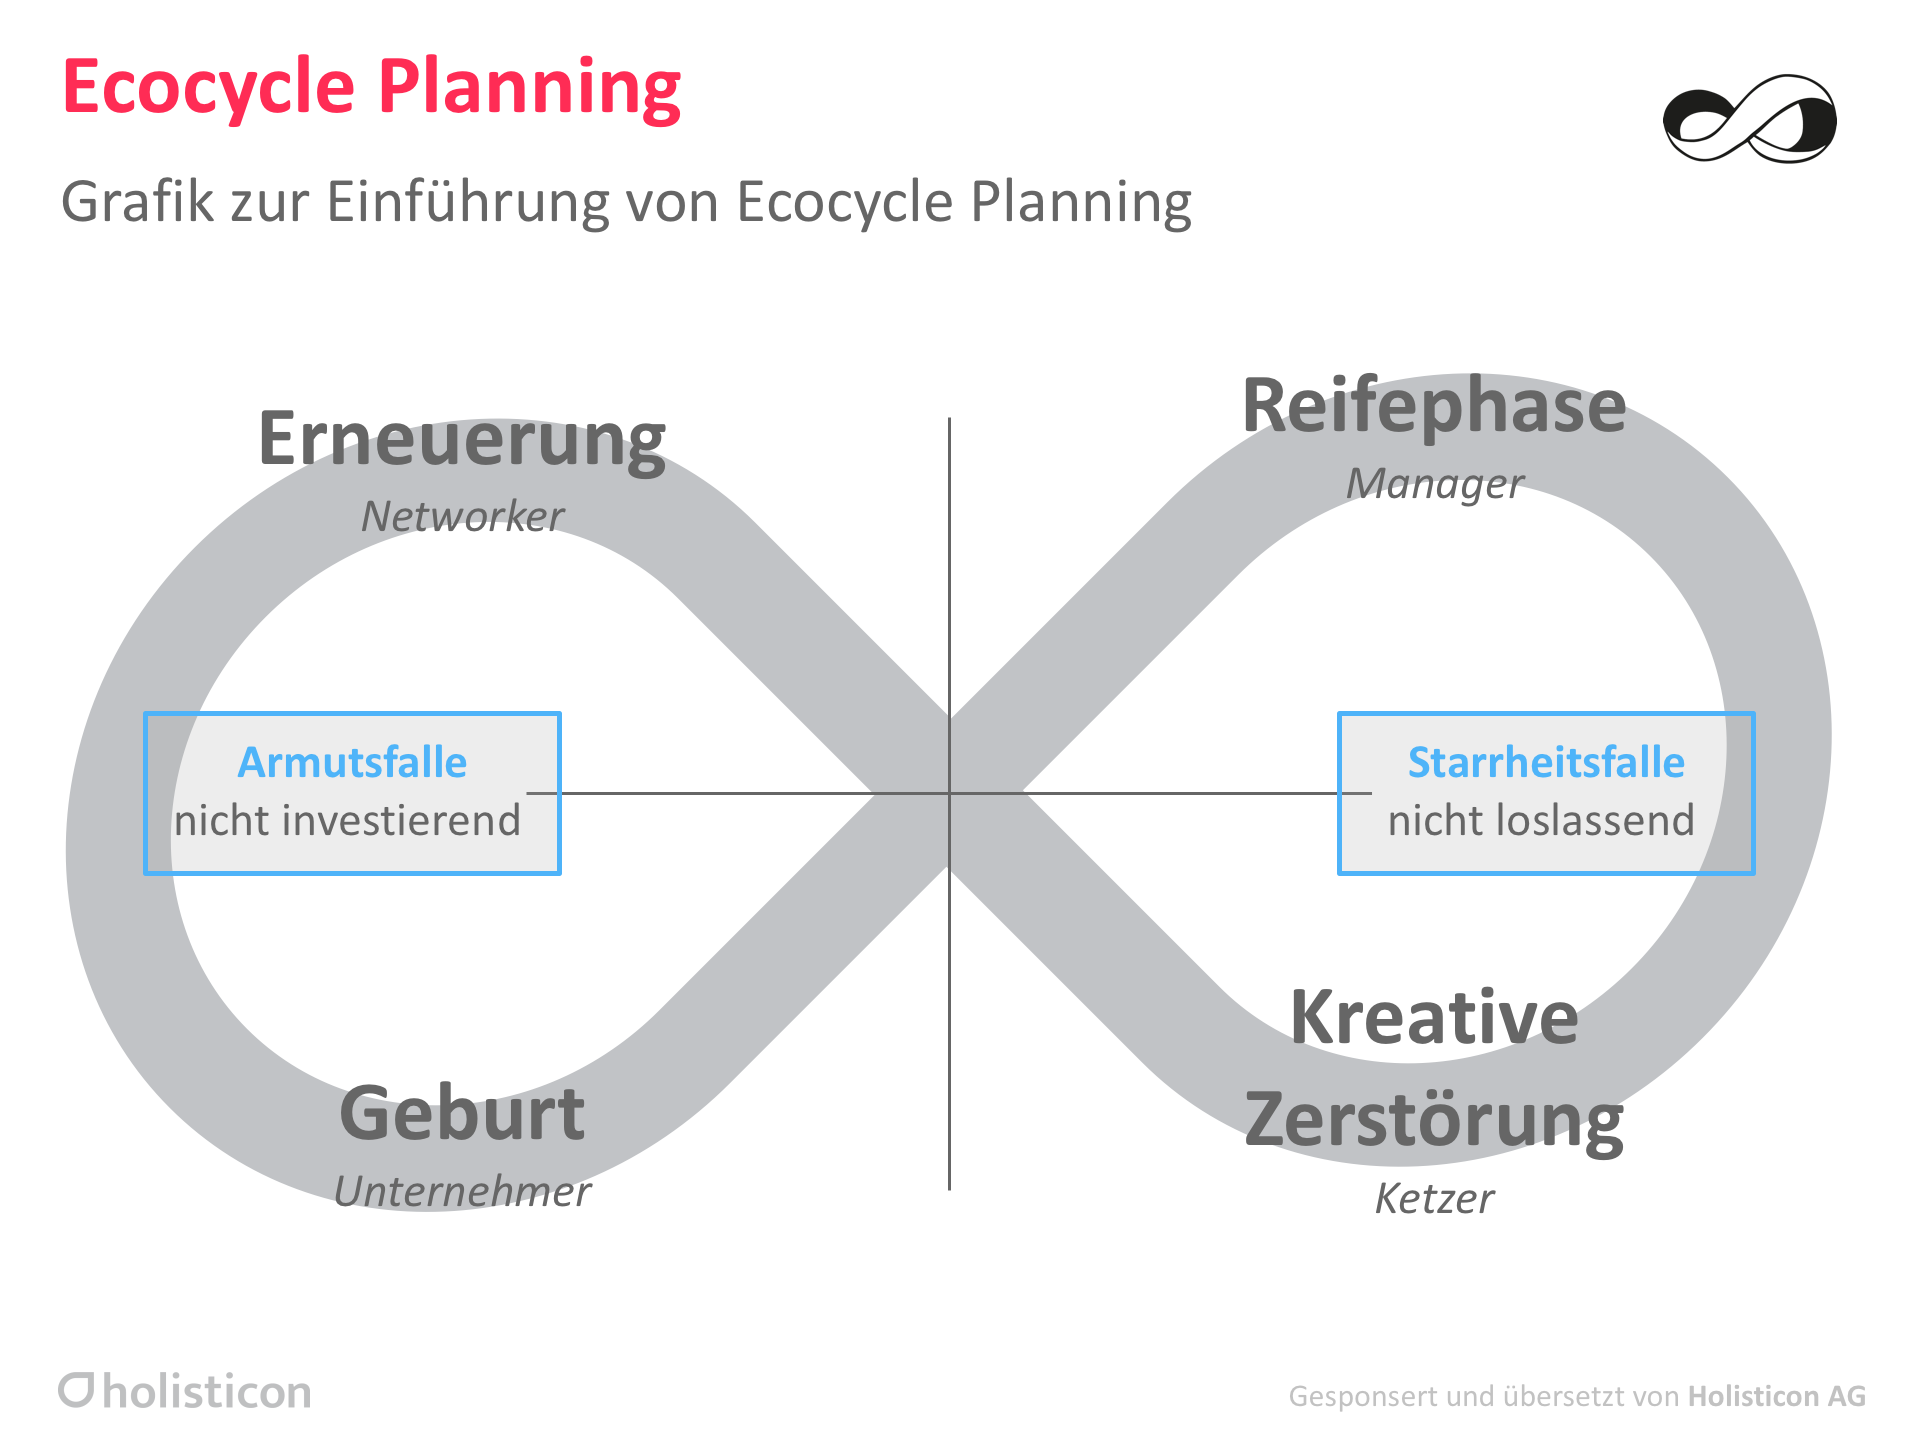 Ecocycle Planning – Liberating Structures